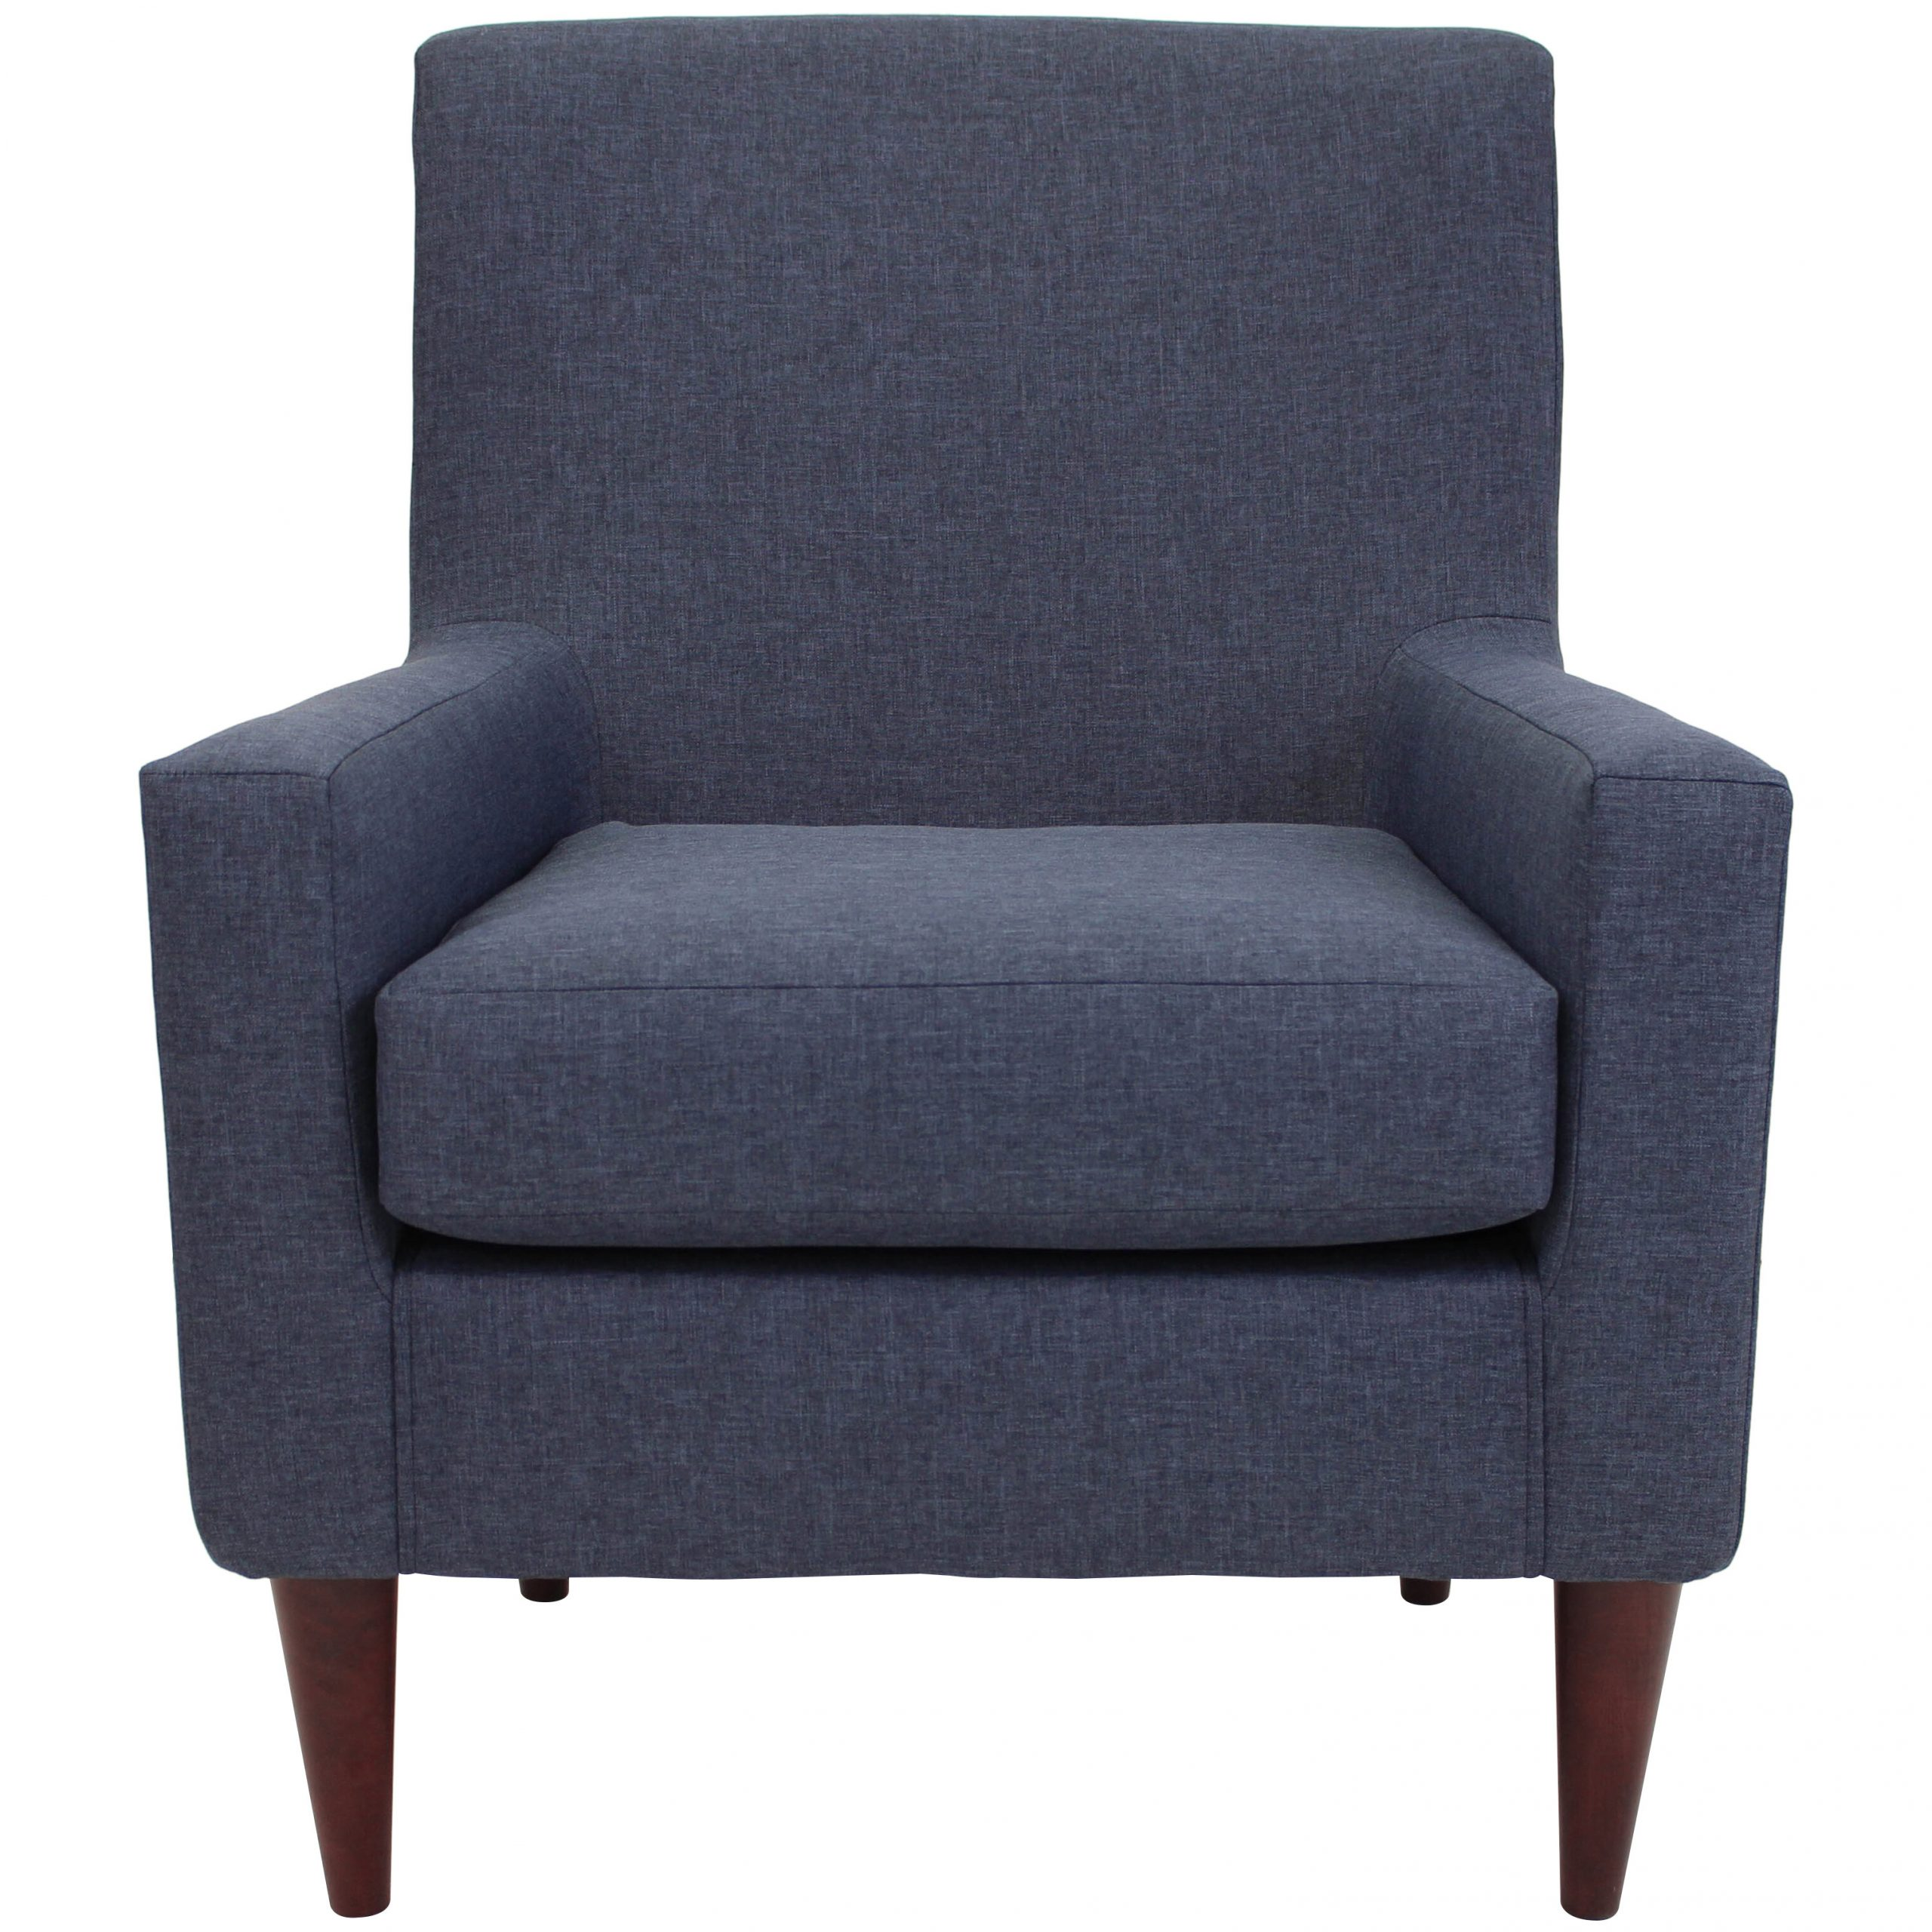 """Kasha Armchairs Throughout Current Marisa 28"""" W Faux Leather Wingback Chair (View 12 of 20)"""